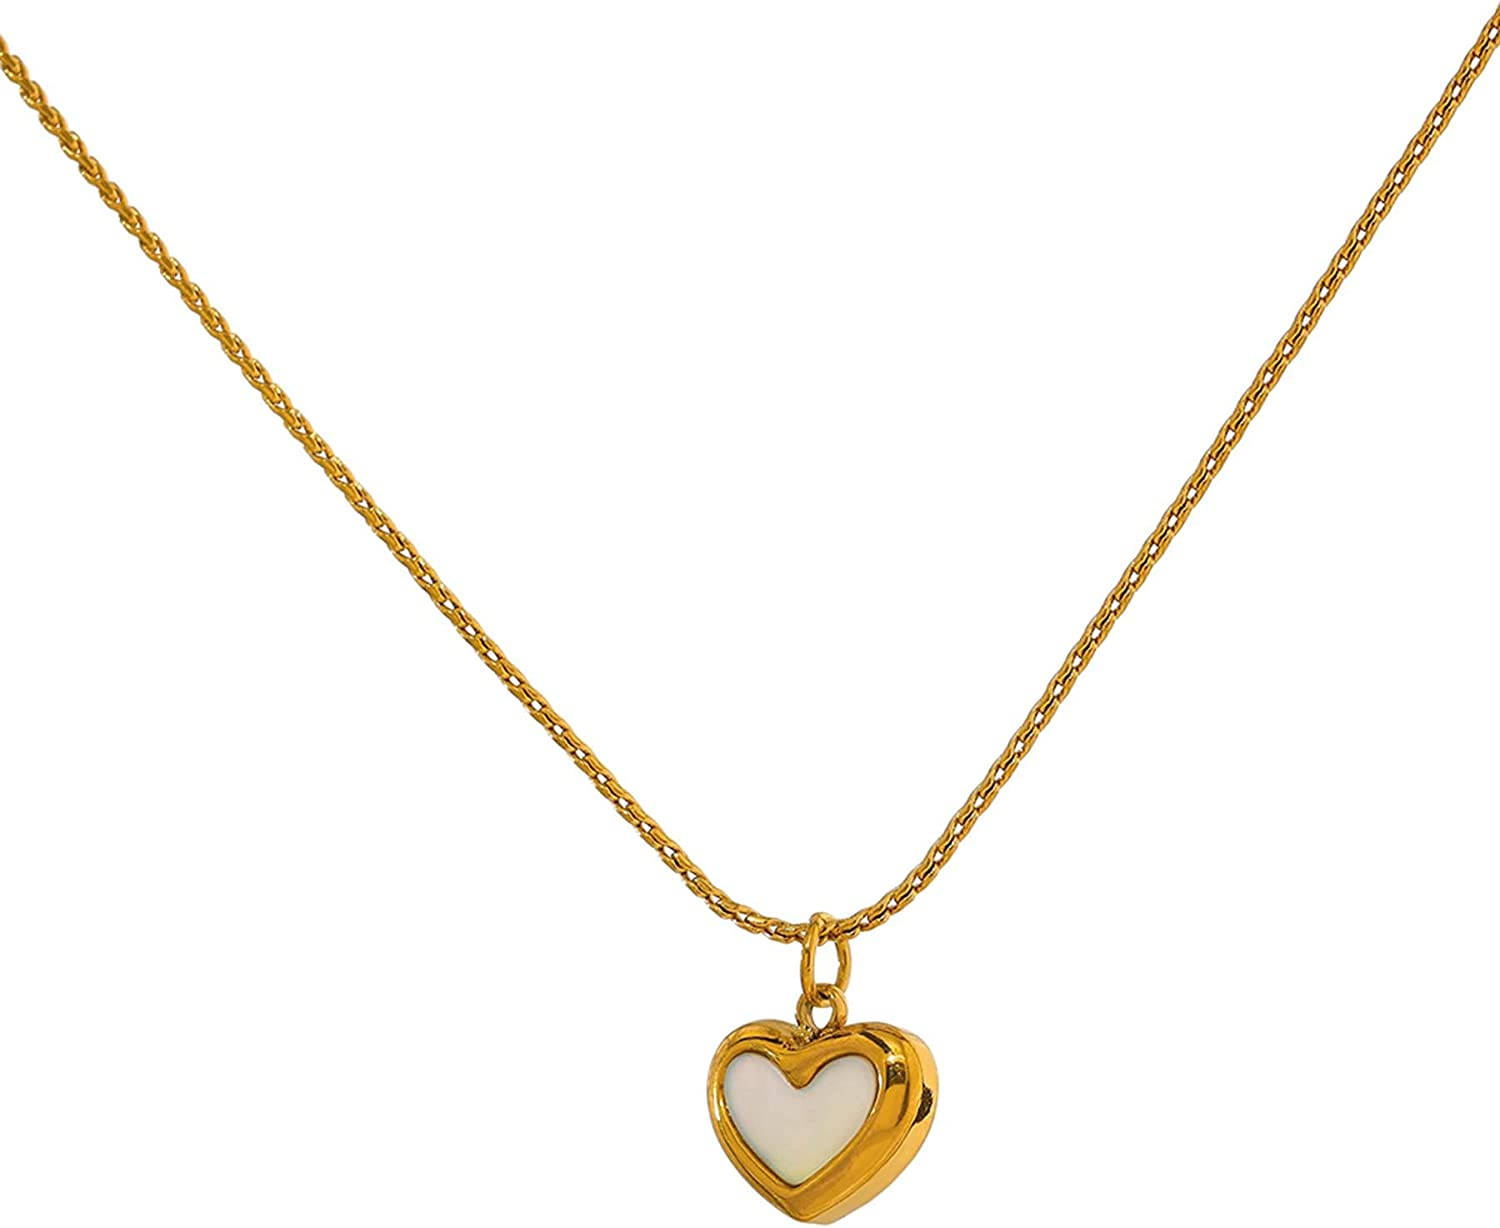 SWAOOS Cute Heart Natural Shell Pendant Necklace 18 K Plated Stainless Steel Collar Necklace Gift Jewelry